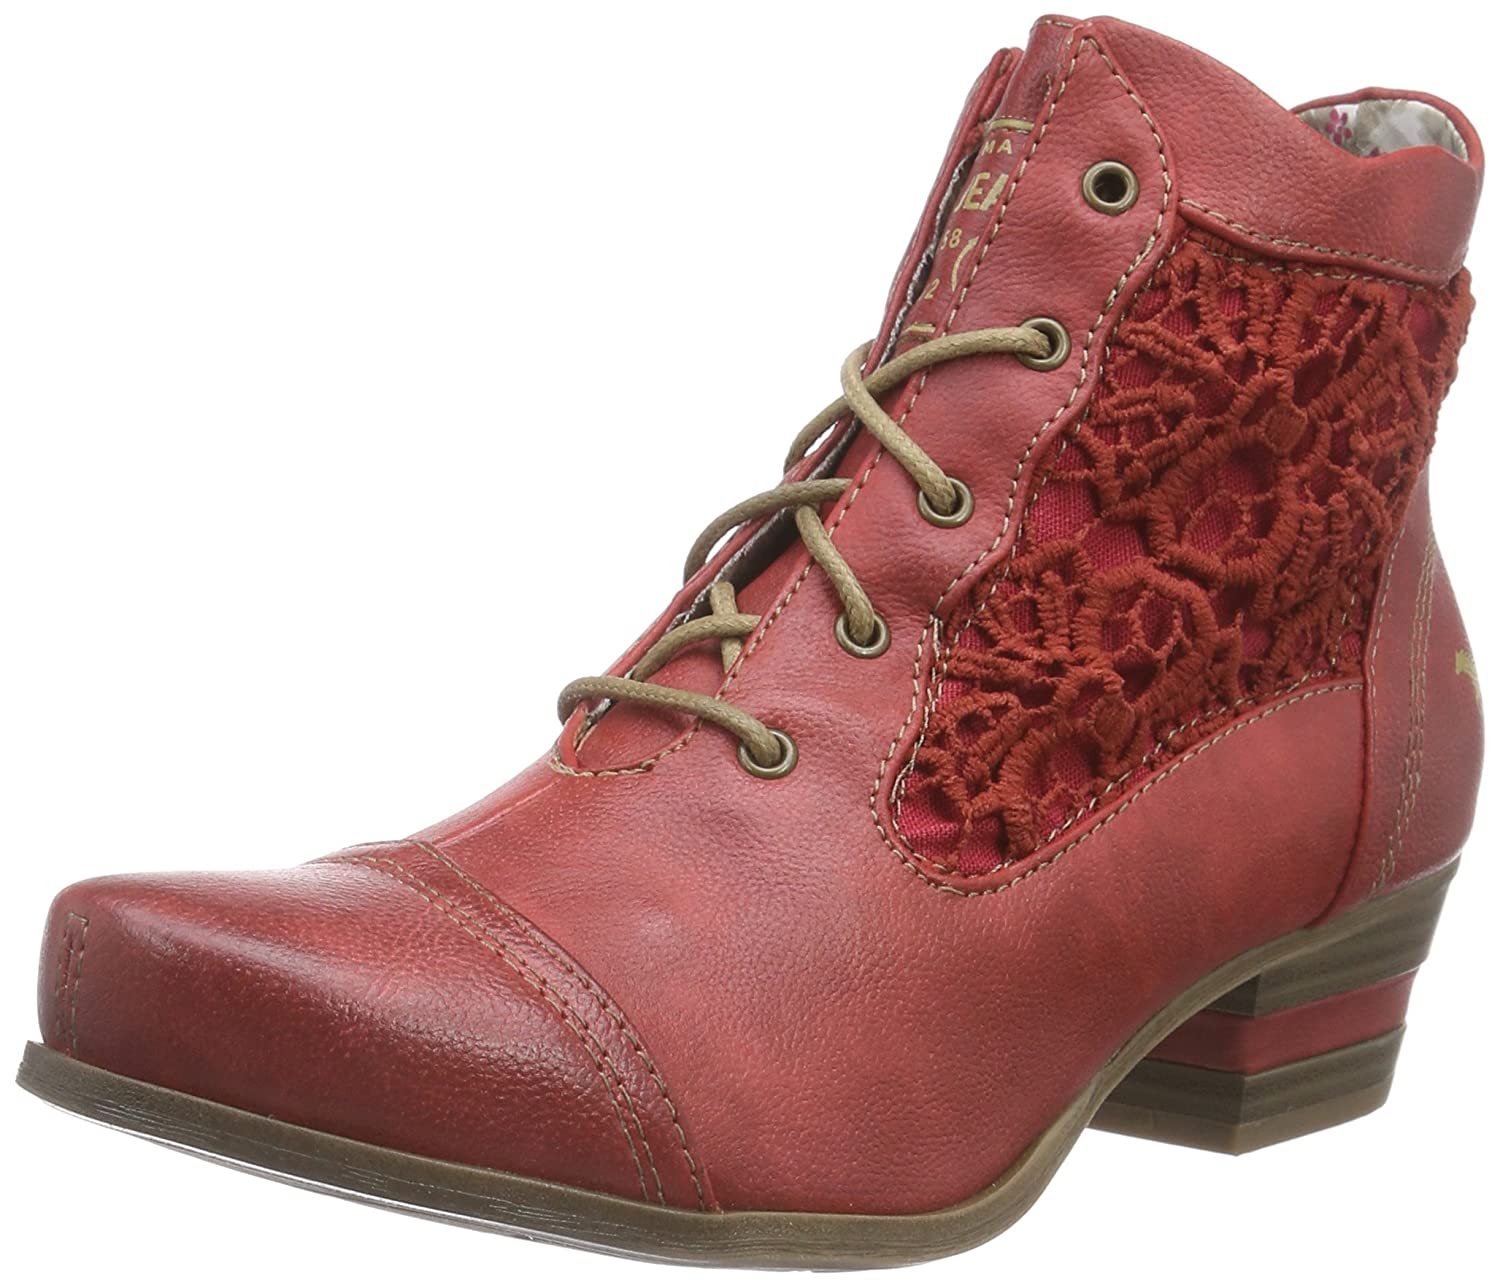 Mustang 1187-501-5, 1187-501-5, Rouge Bottes Classiques Femme B012OBQCEK Rouge (5 Rot) 2a6217e - reprogrammed.space